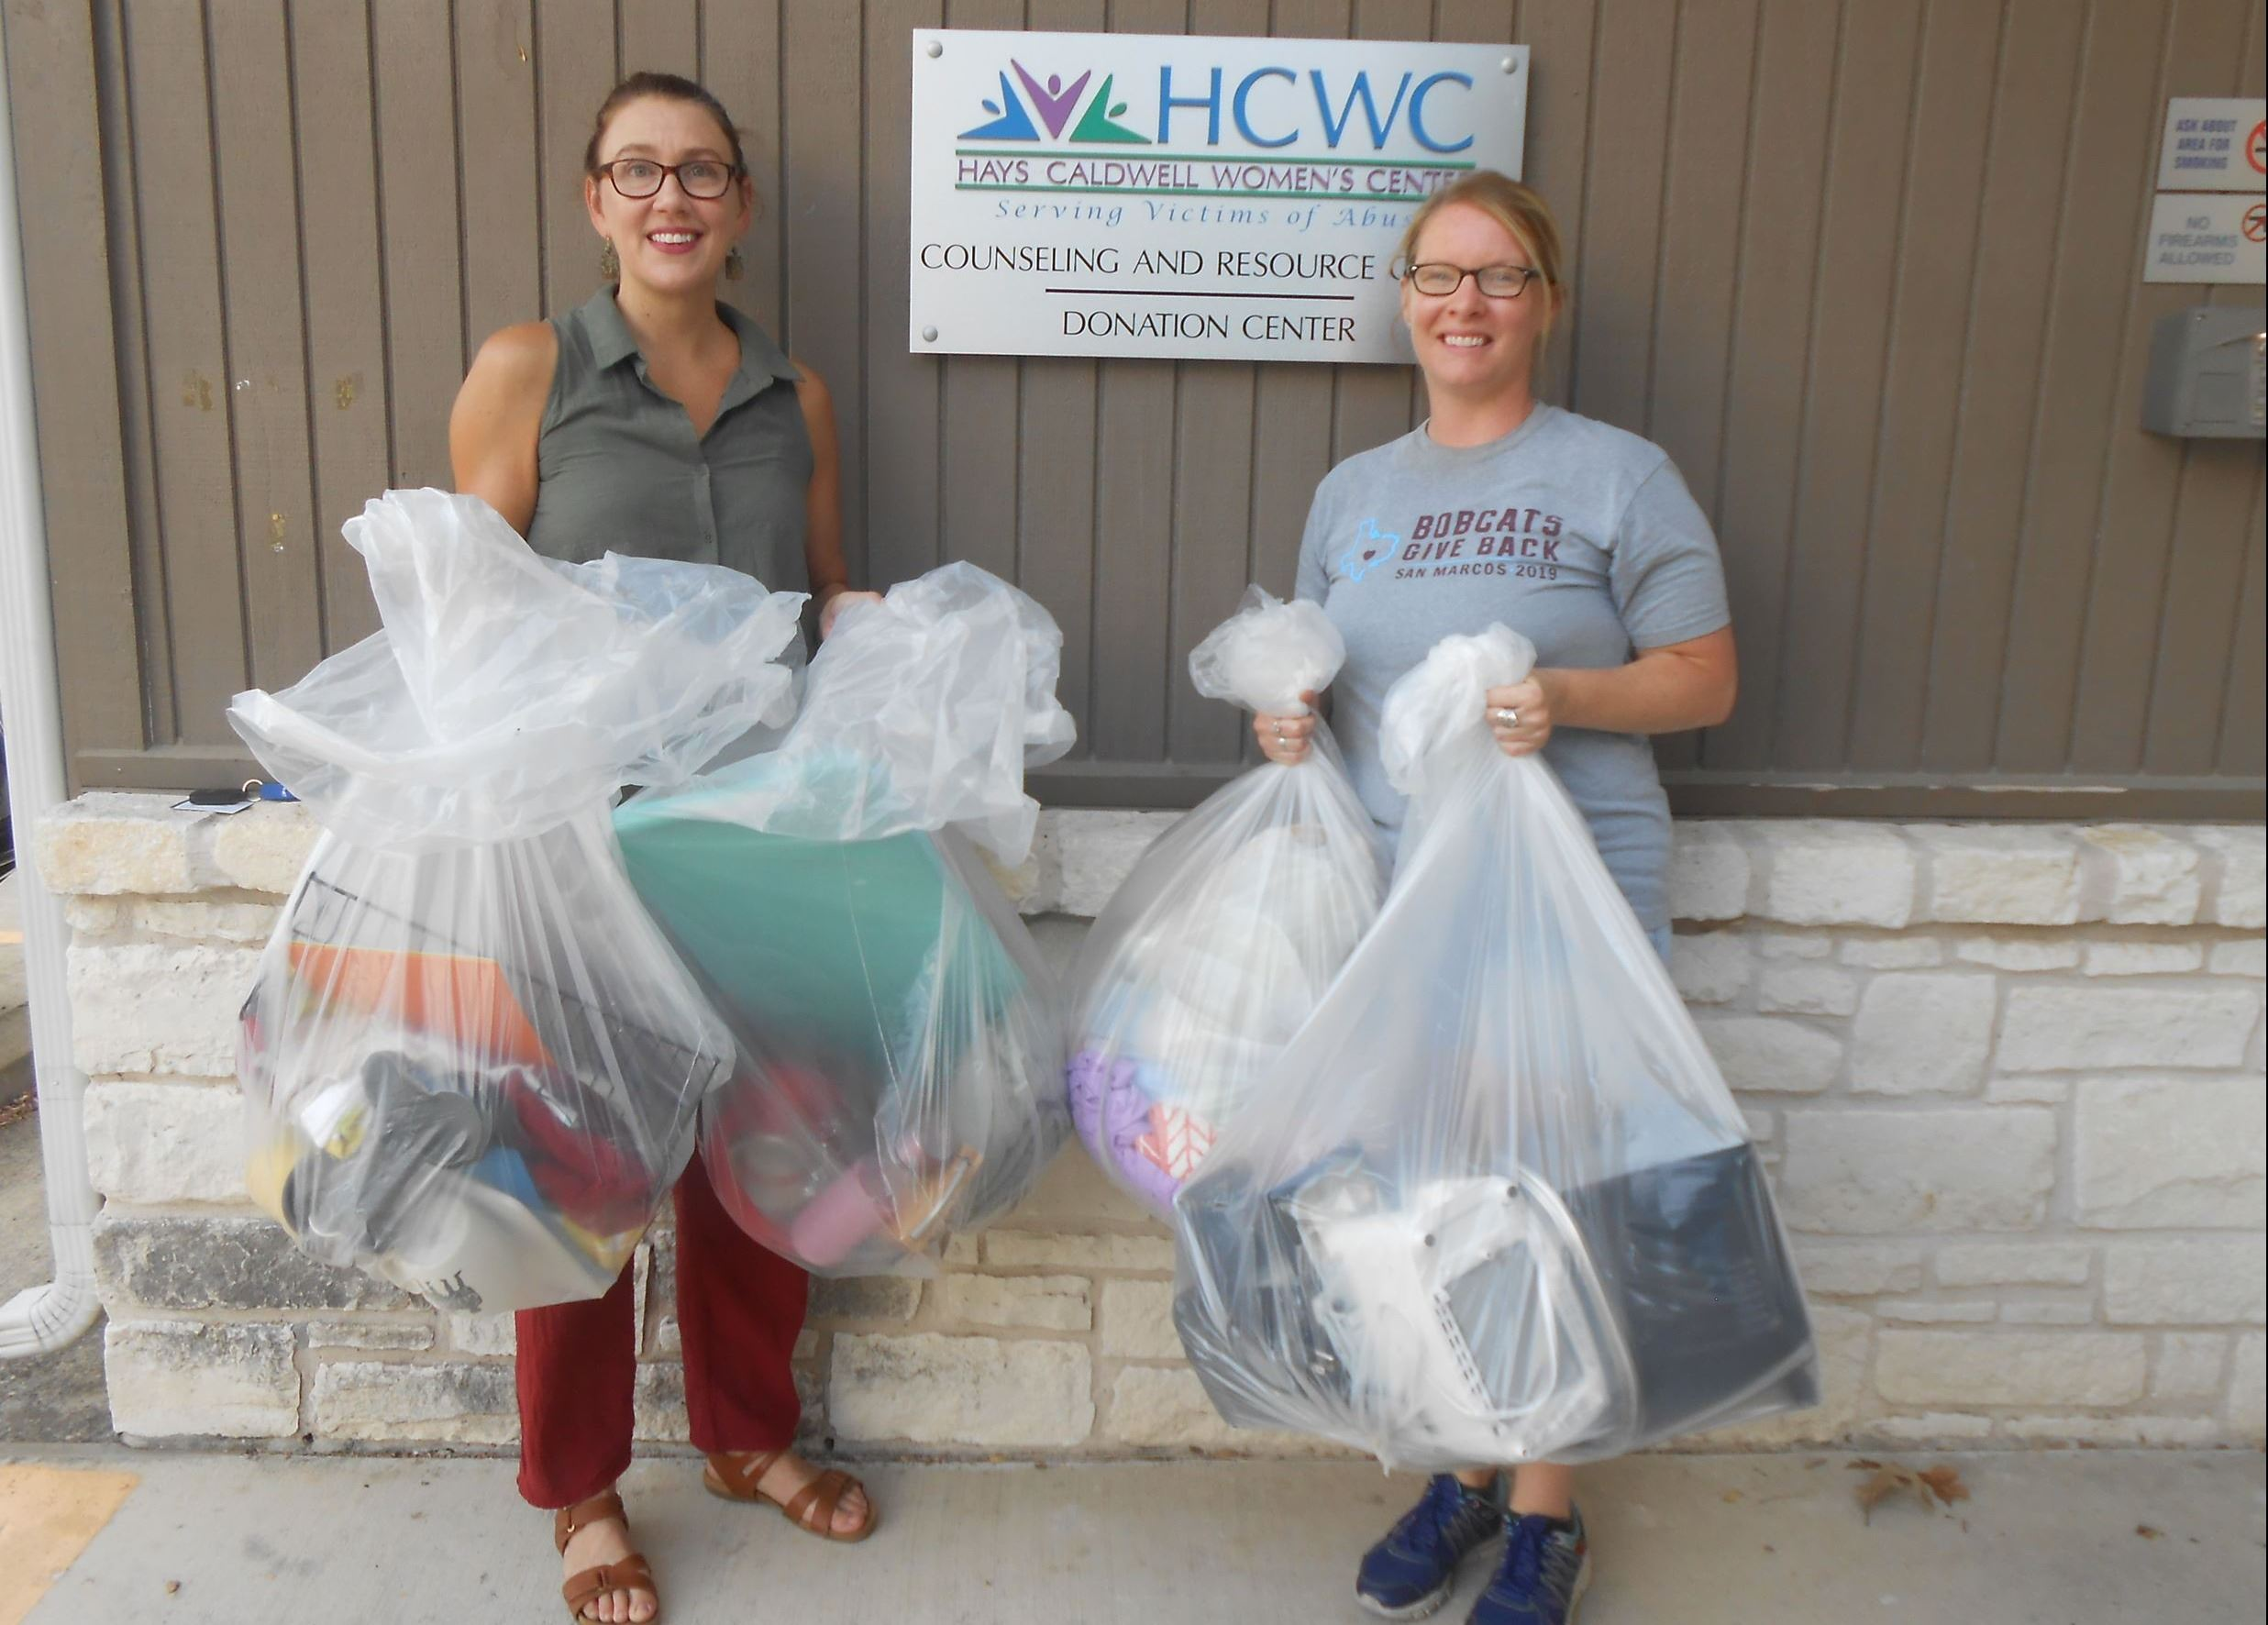 Photo of Bobcats Give Back volunteers delivering donations to Hays County Womens Center